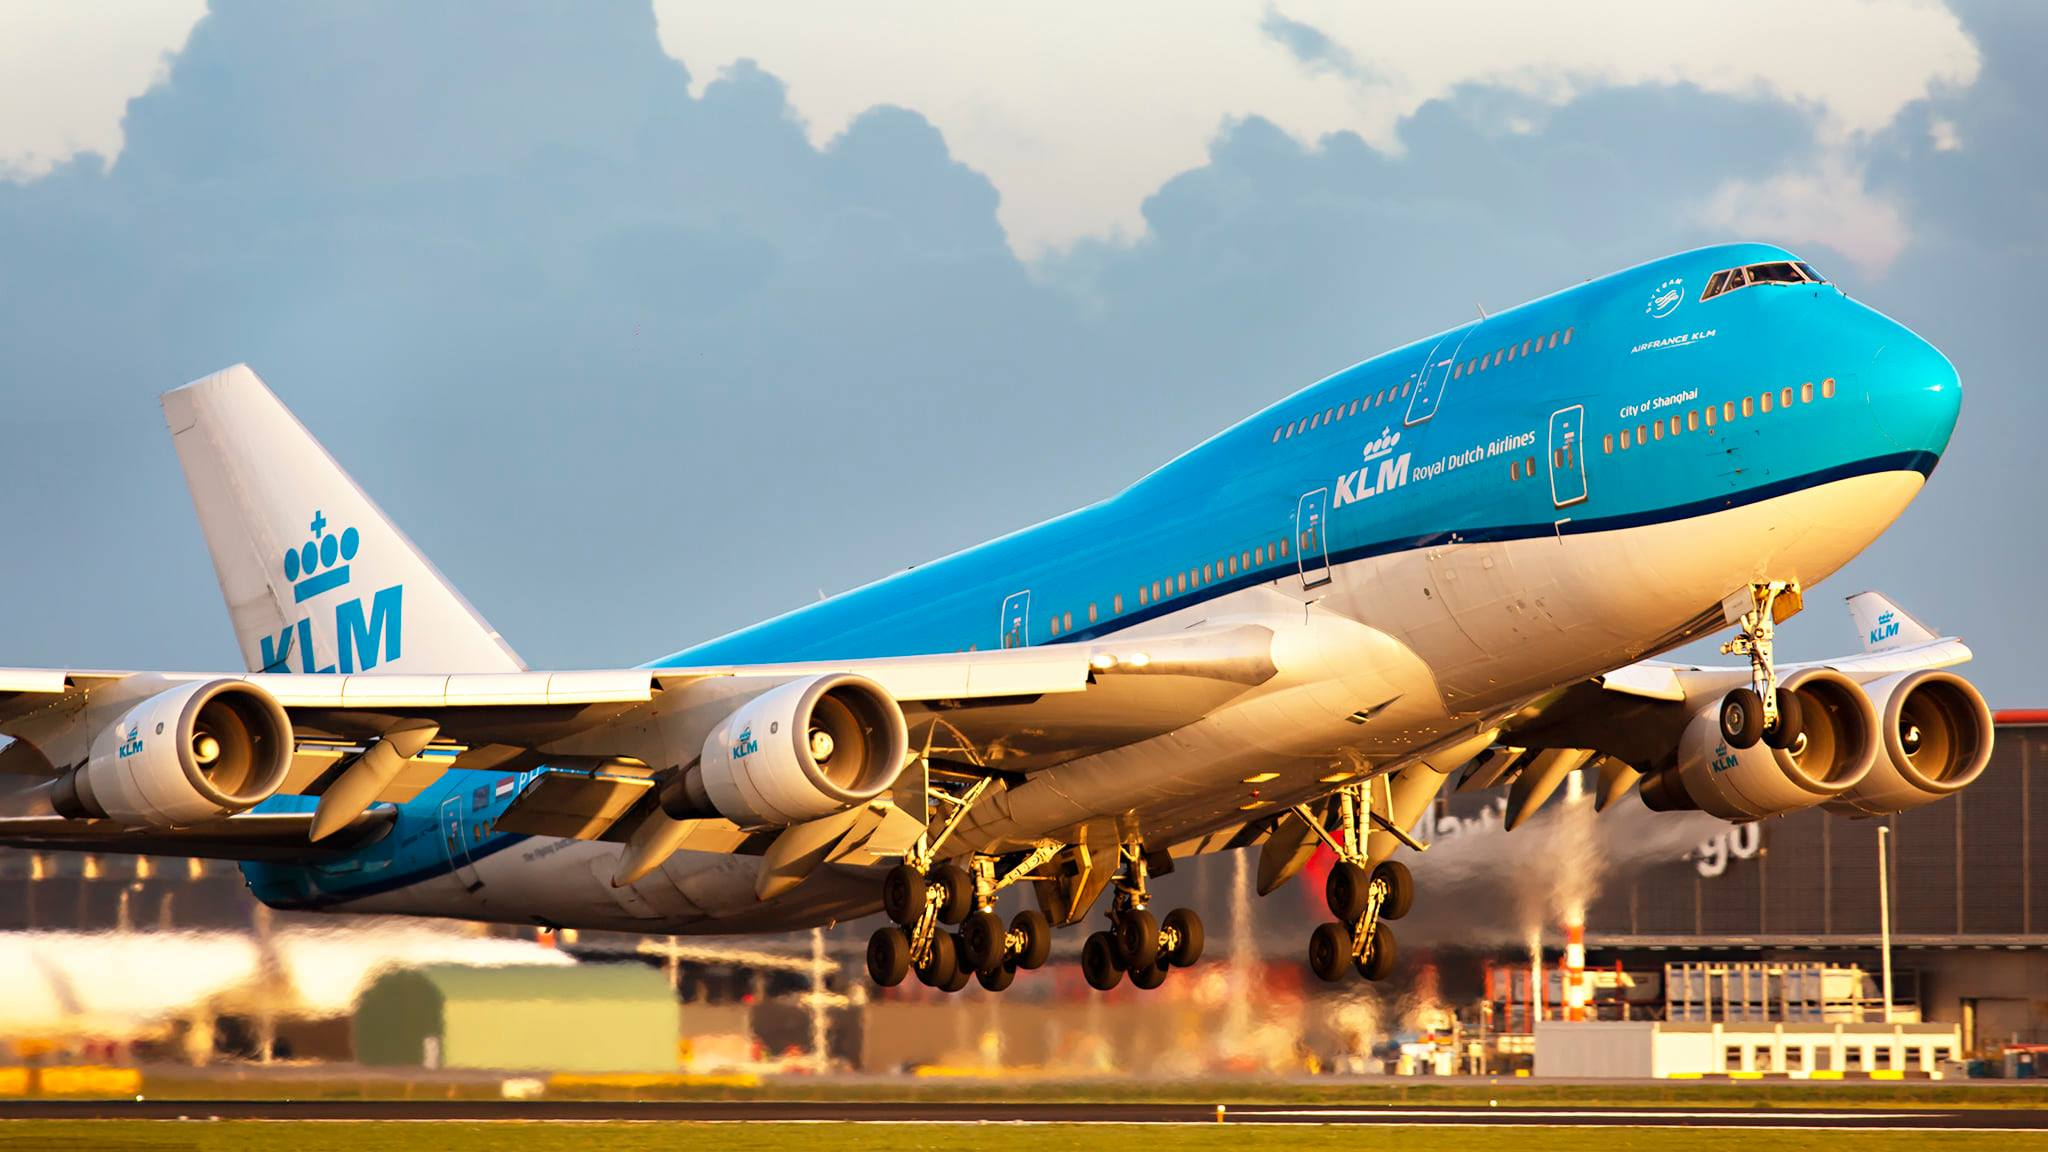 Farewell of KLM Boeing 747-400 jumbo jets set on Sunday